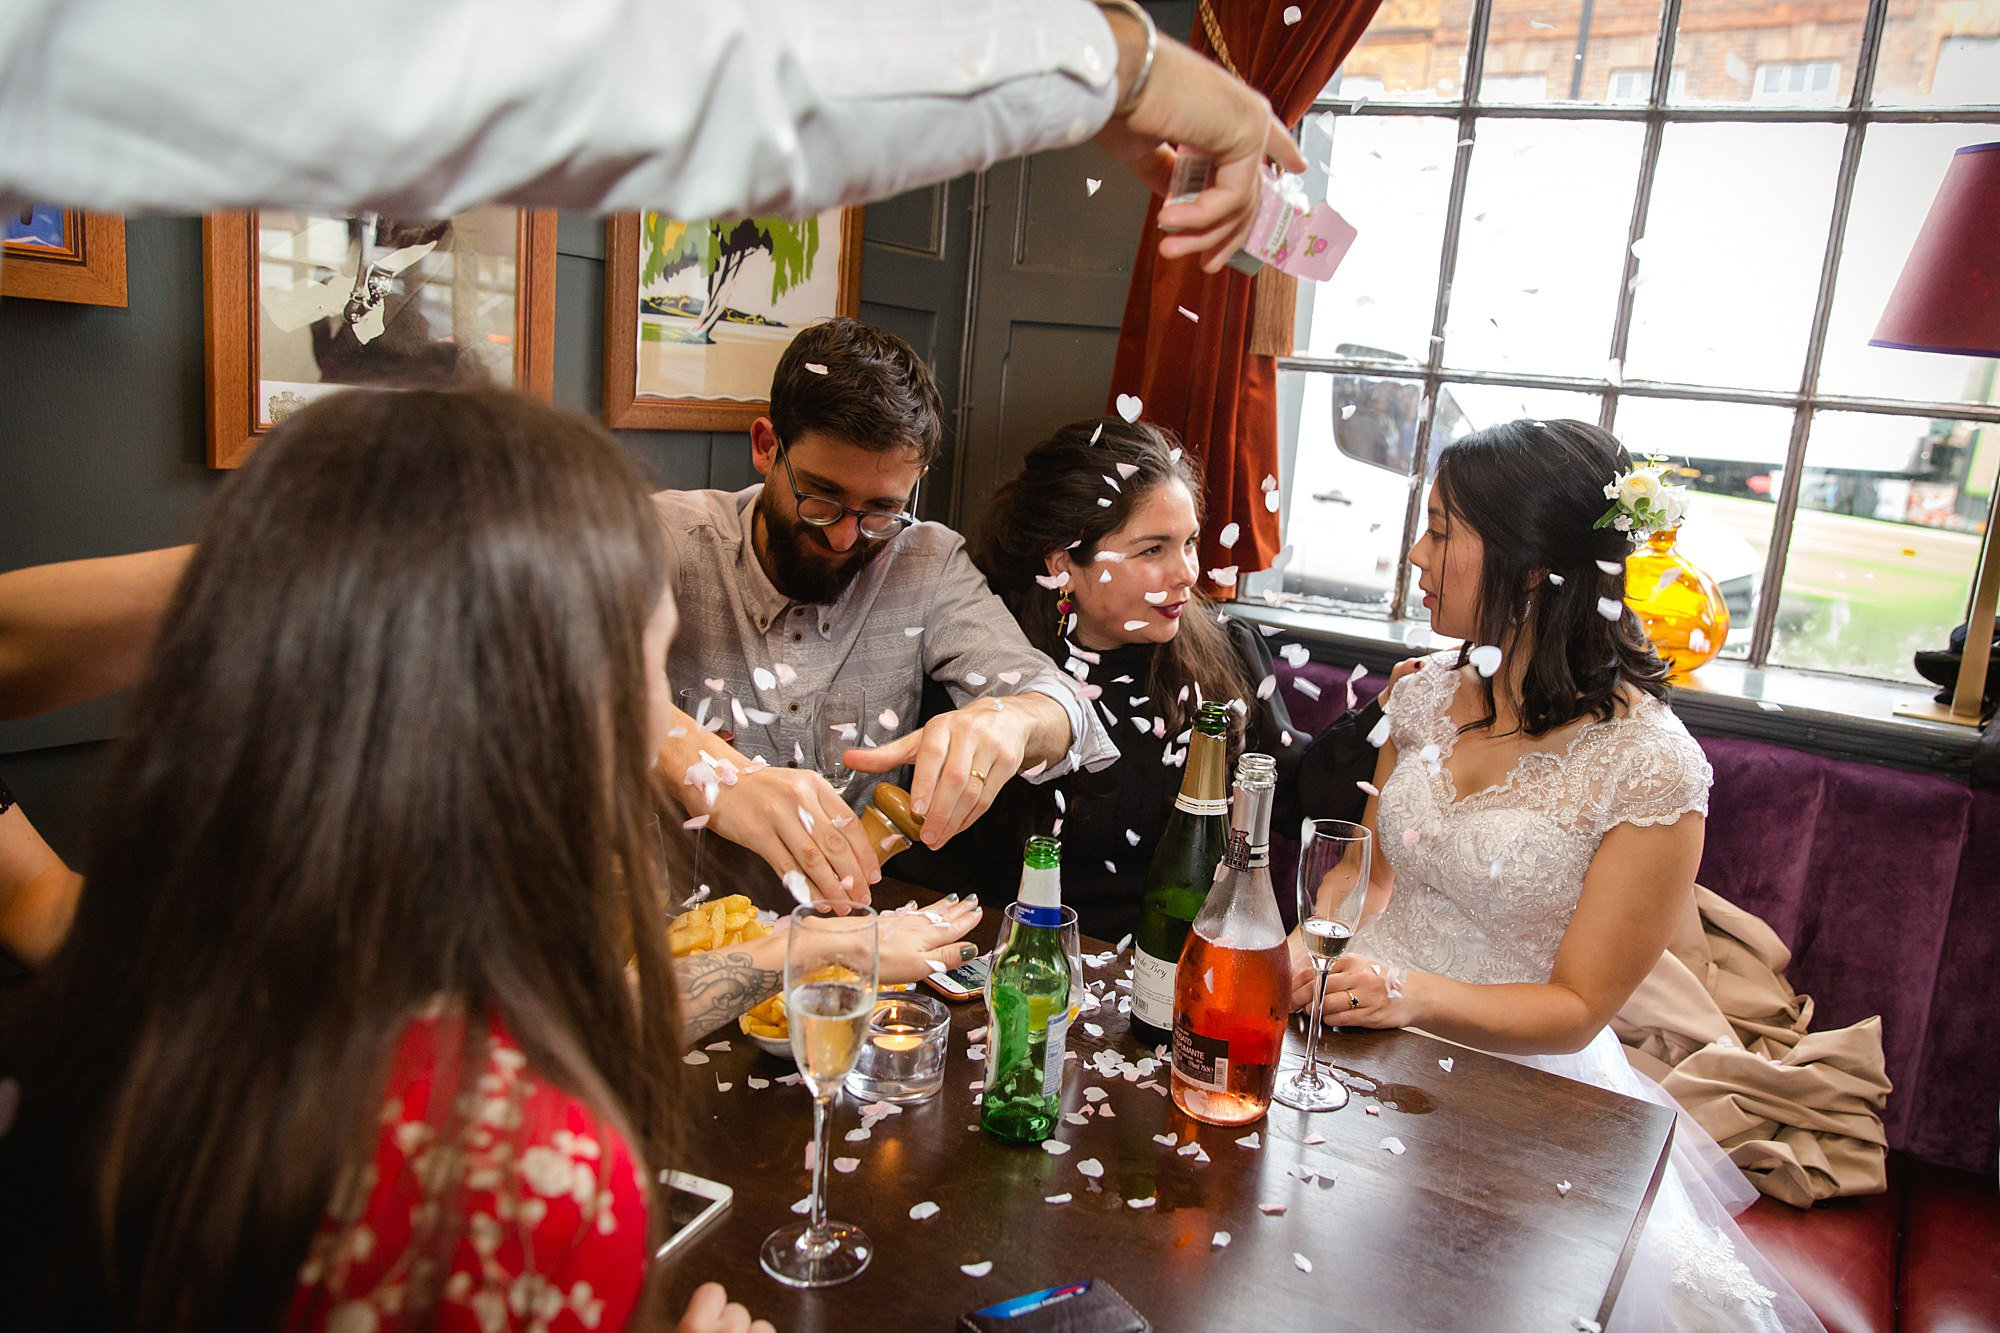 Wandsworth pub wedding confetti thrown on bride